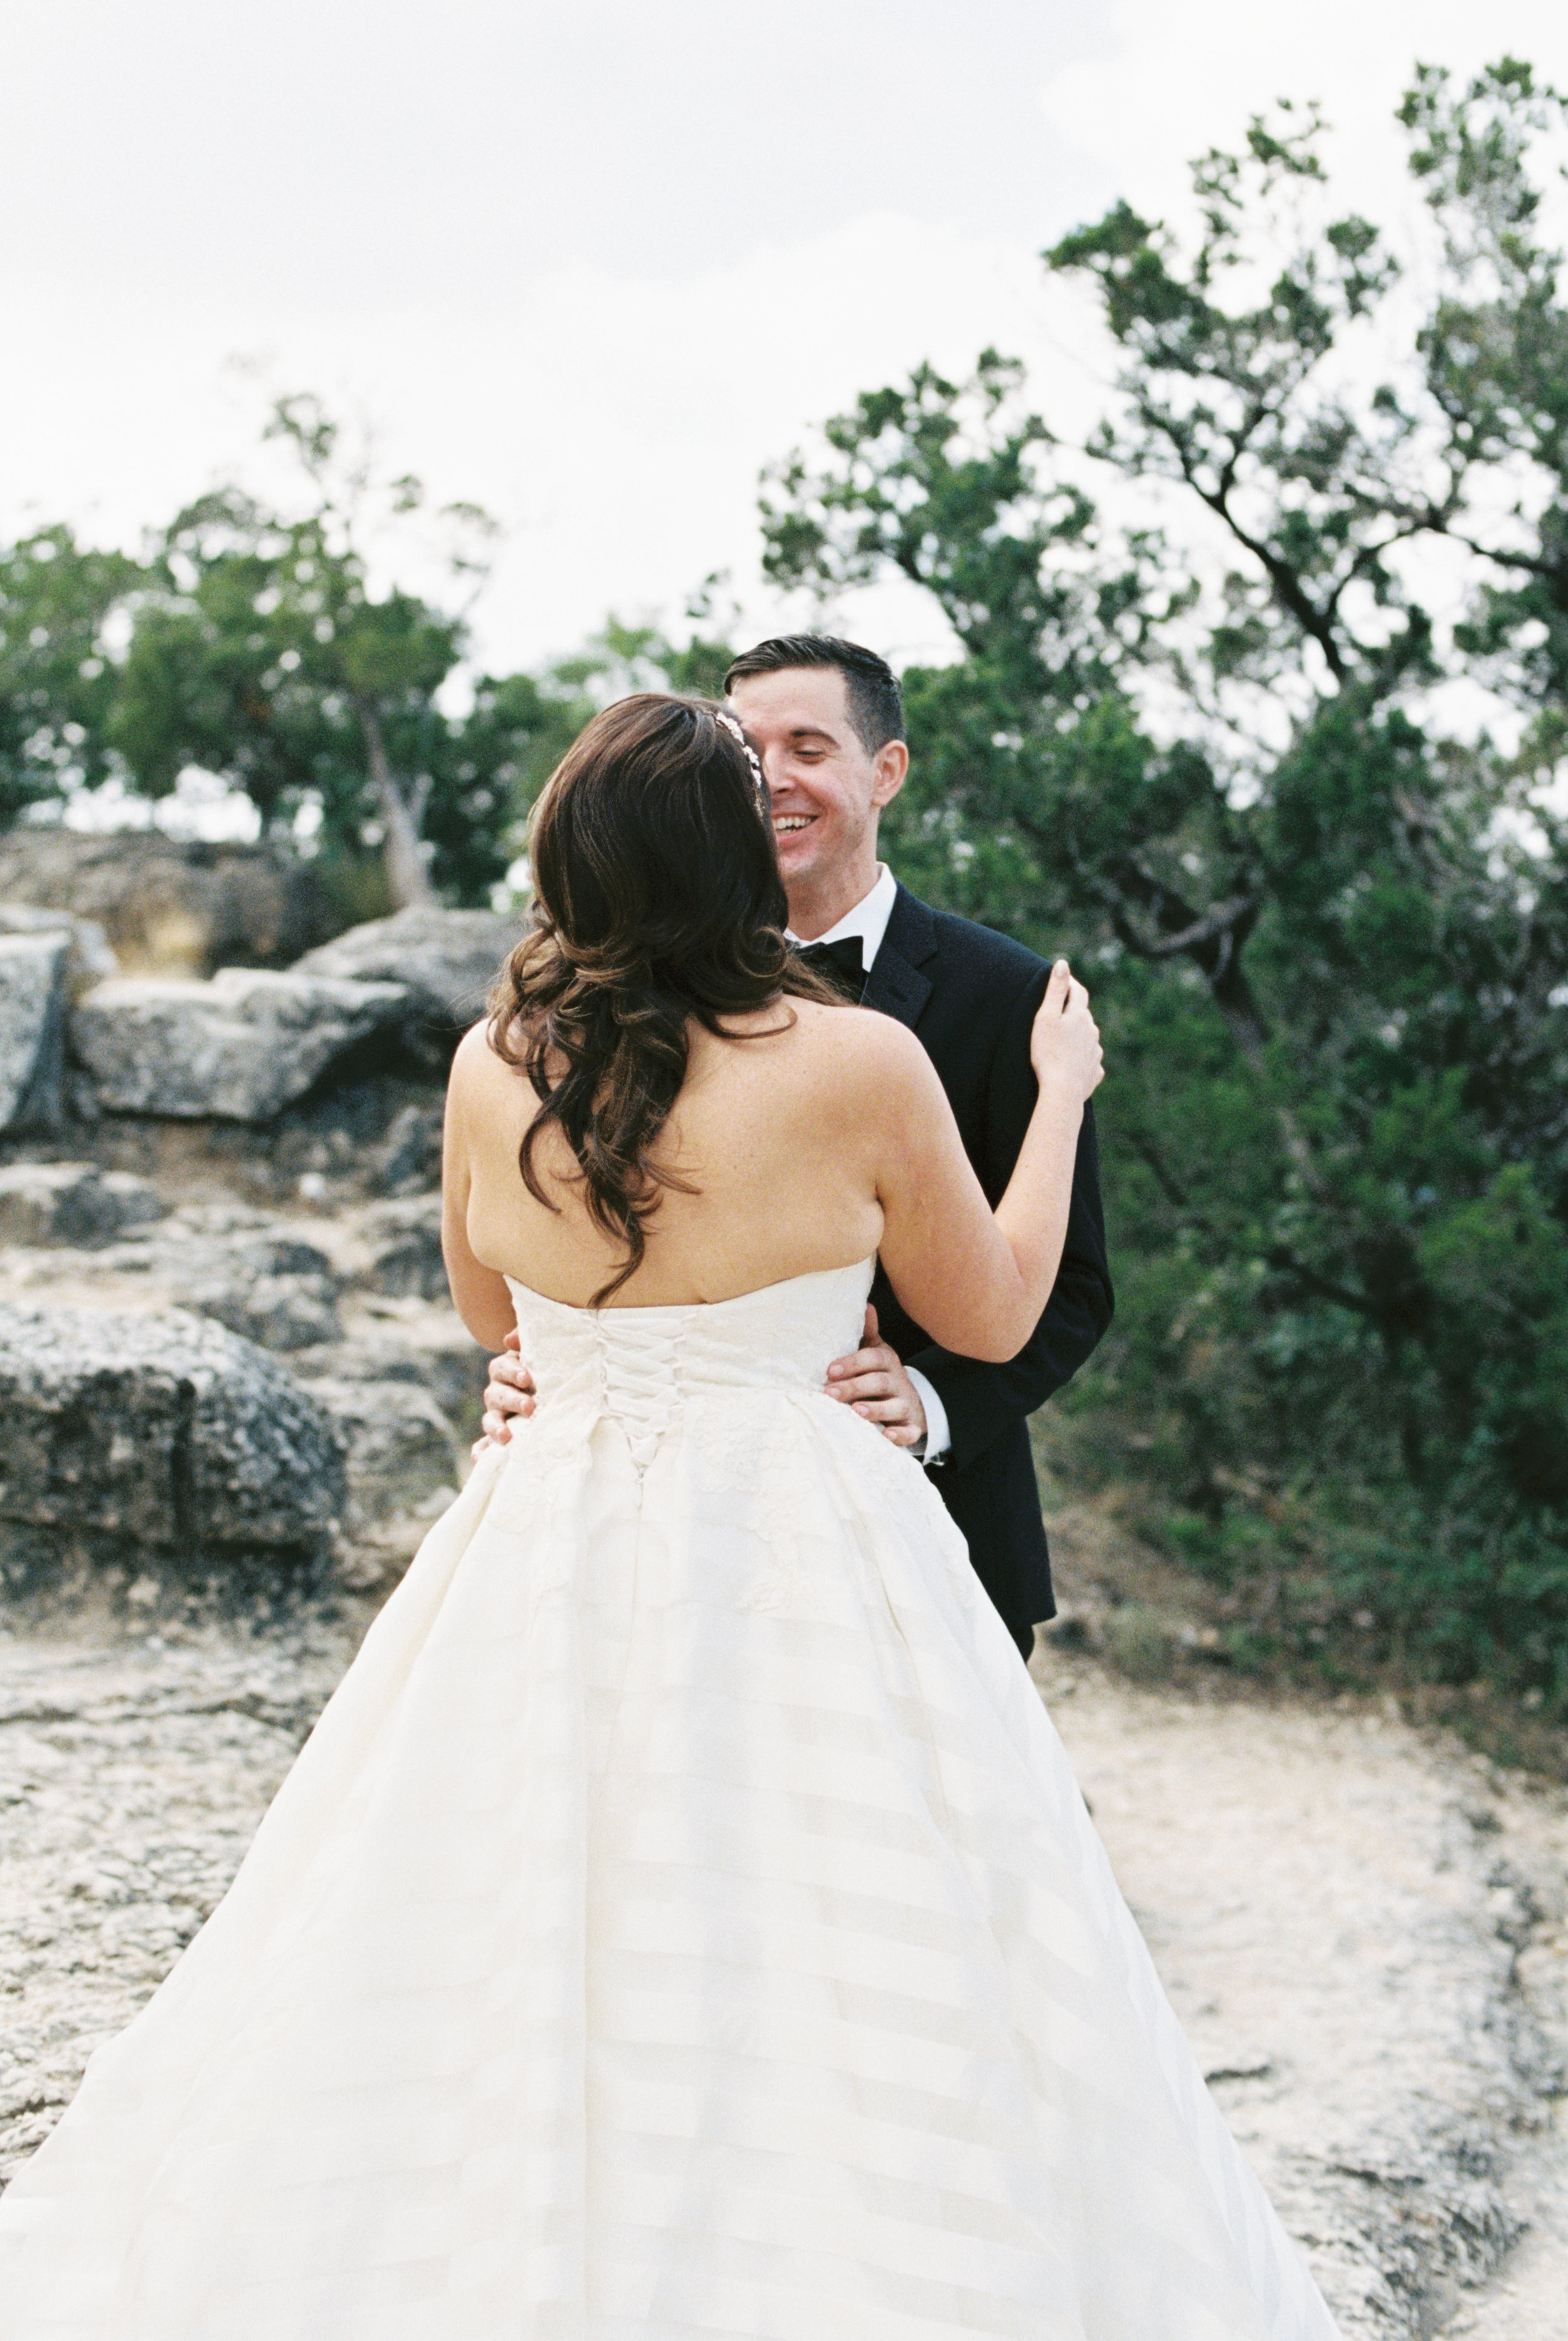 chris&katewedding-55.jpg